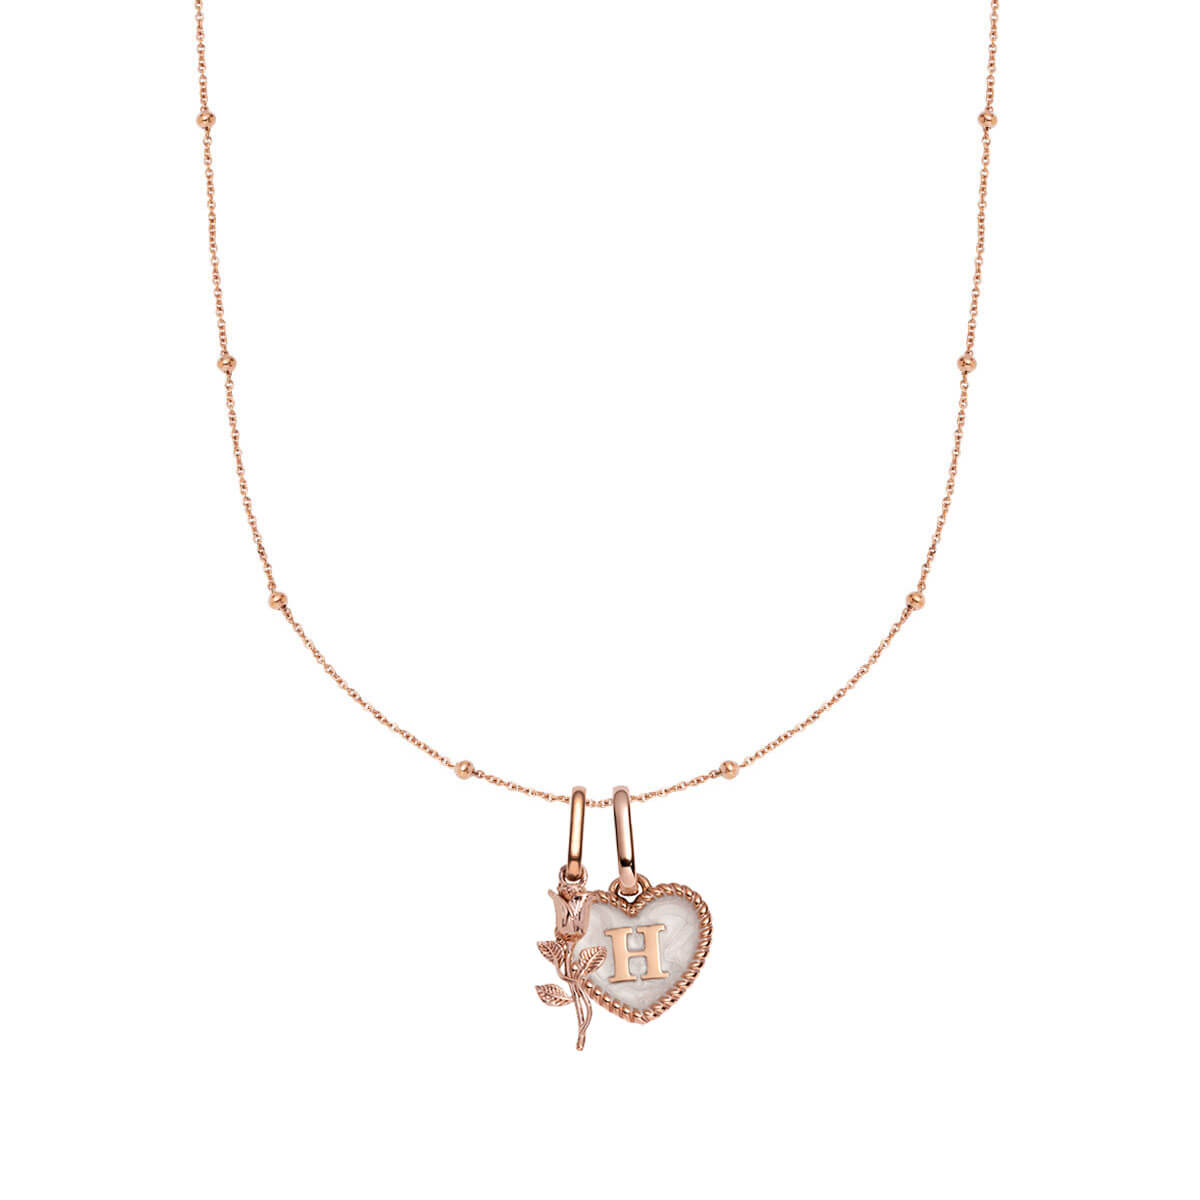 Pearl Heart & Rose Pendant Sphere Chain Necklace 20 in (Rose Gold)